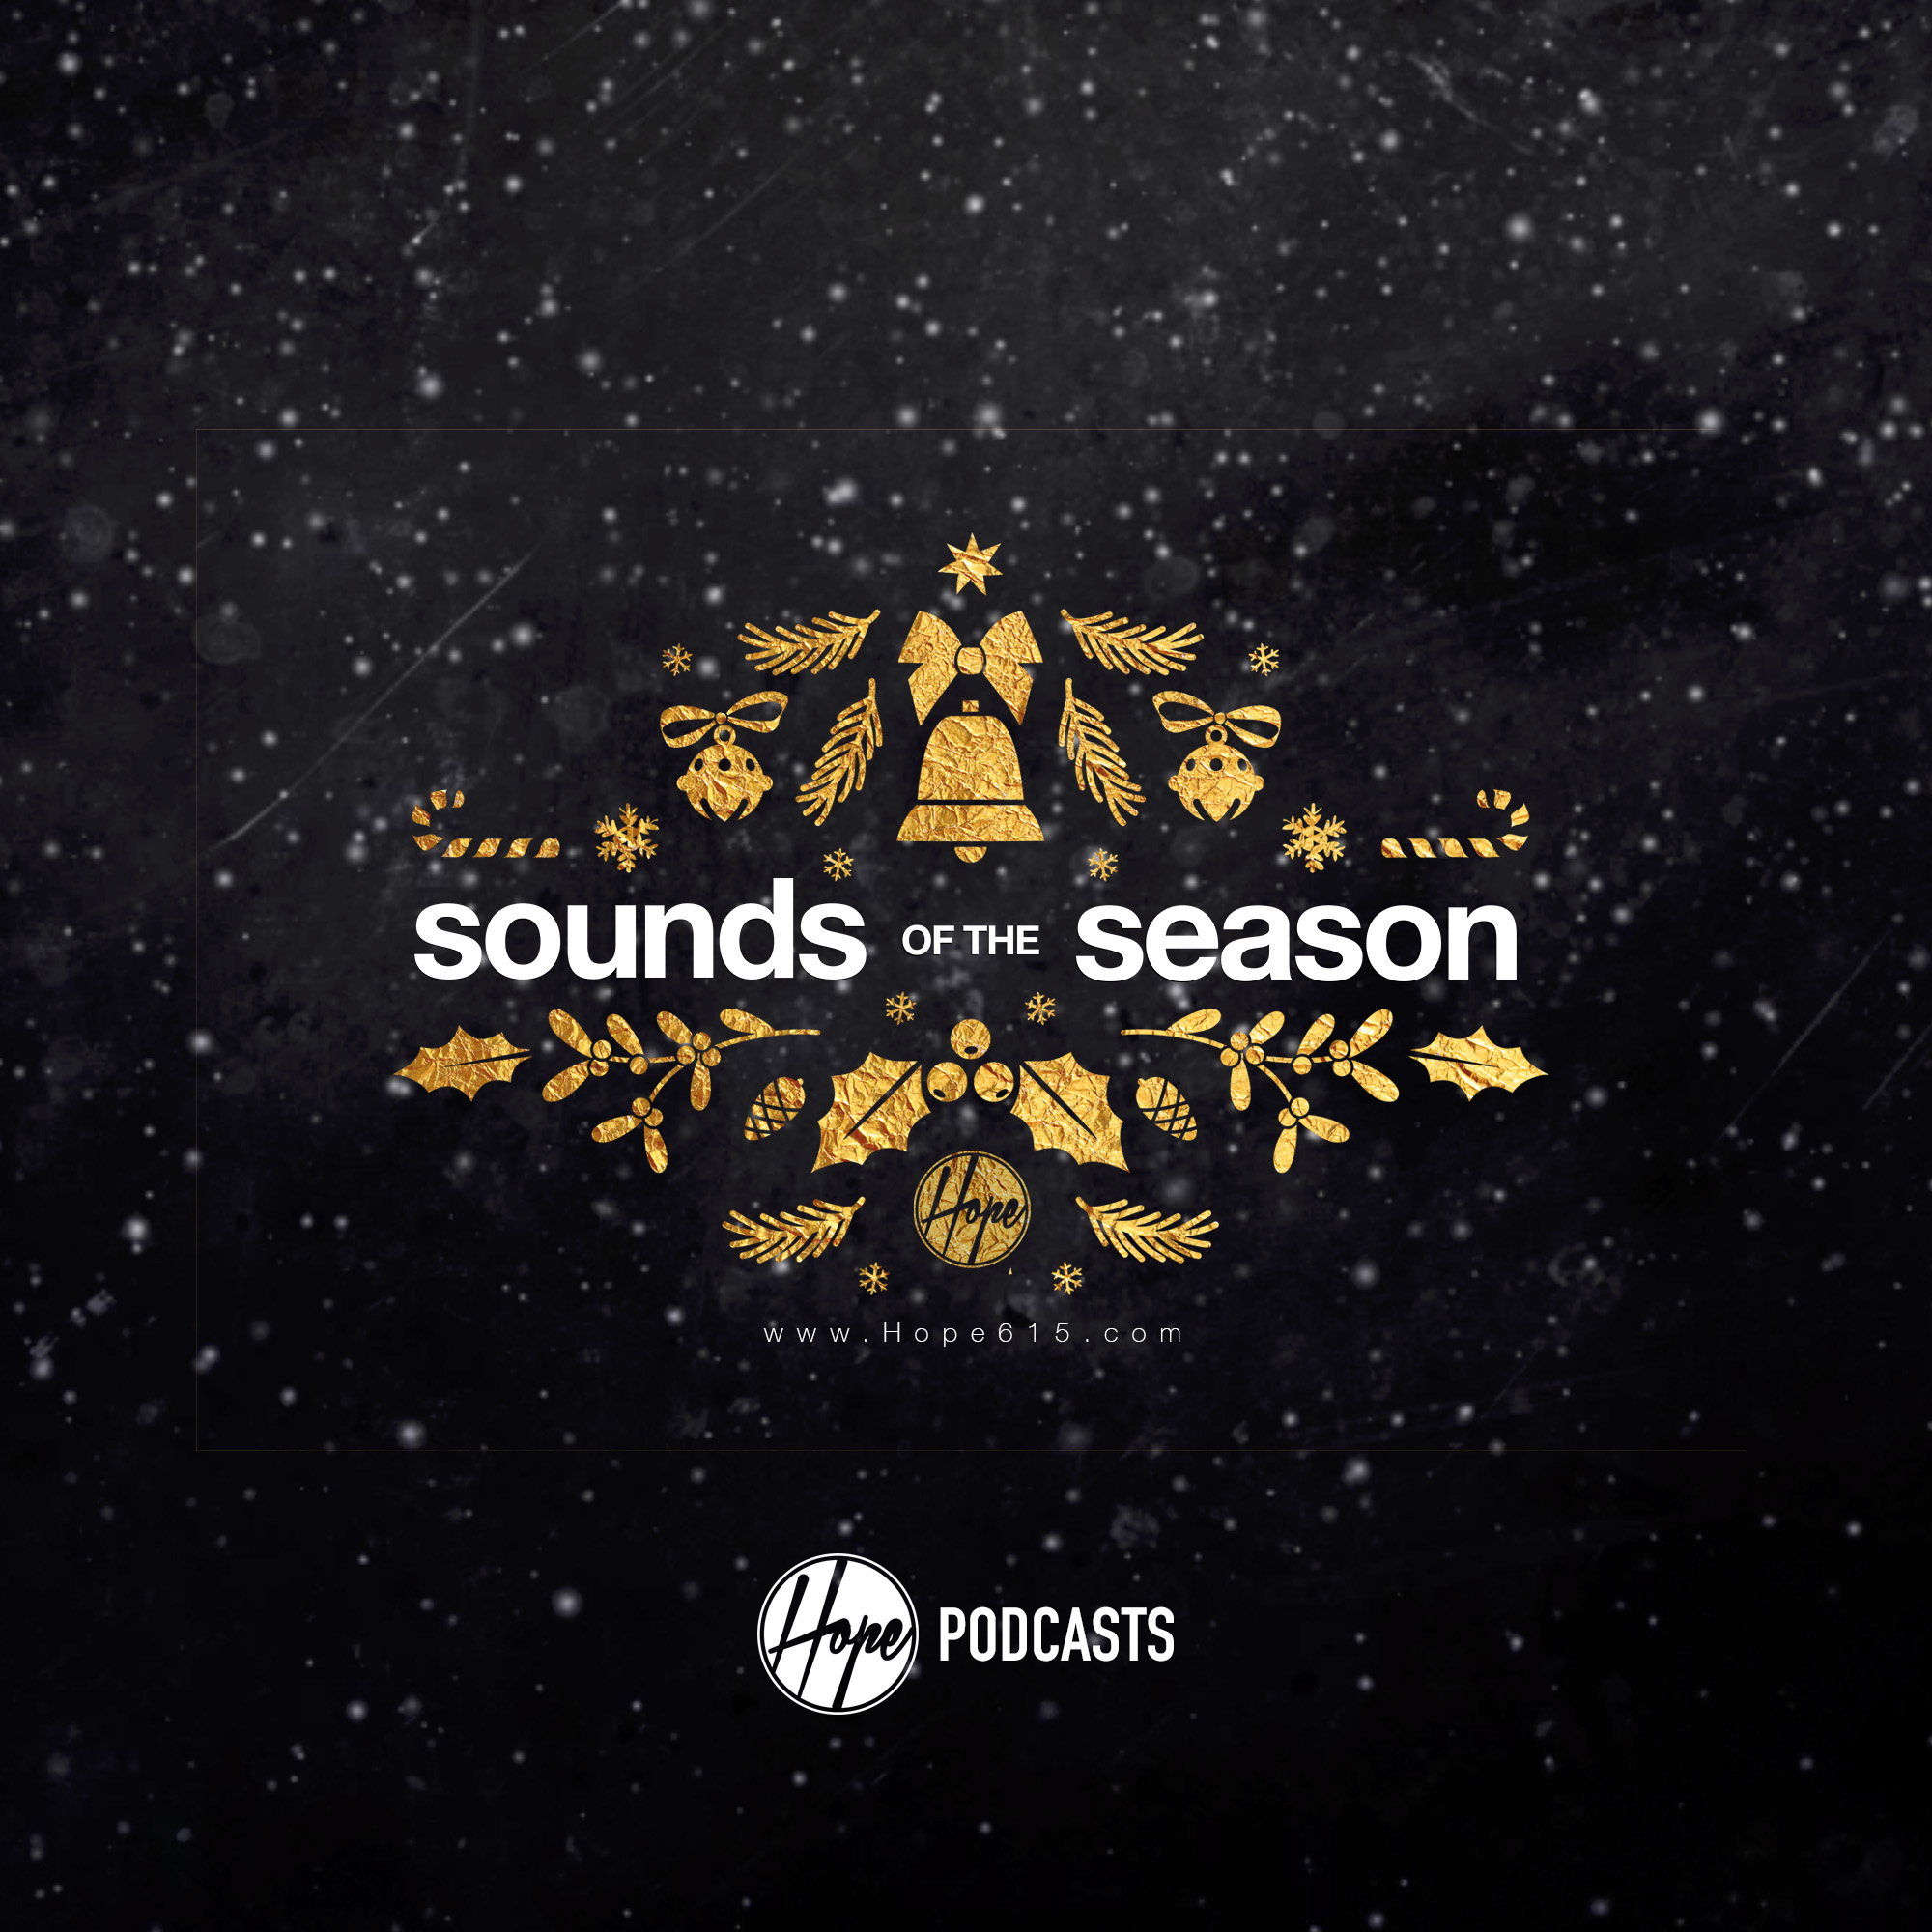 sounds of season image.jpg